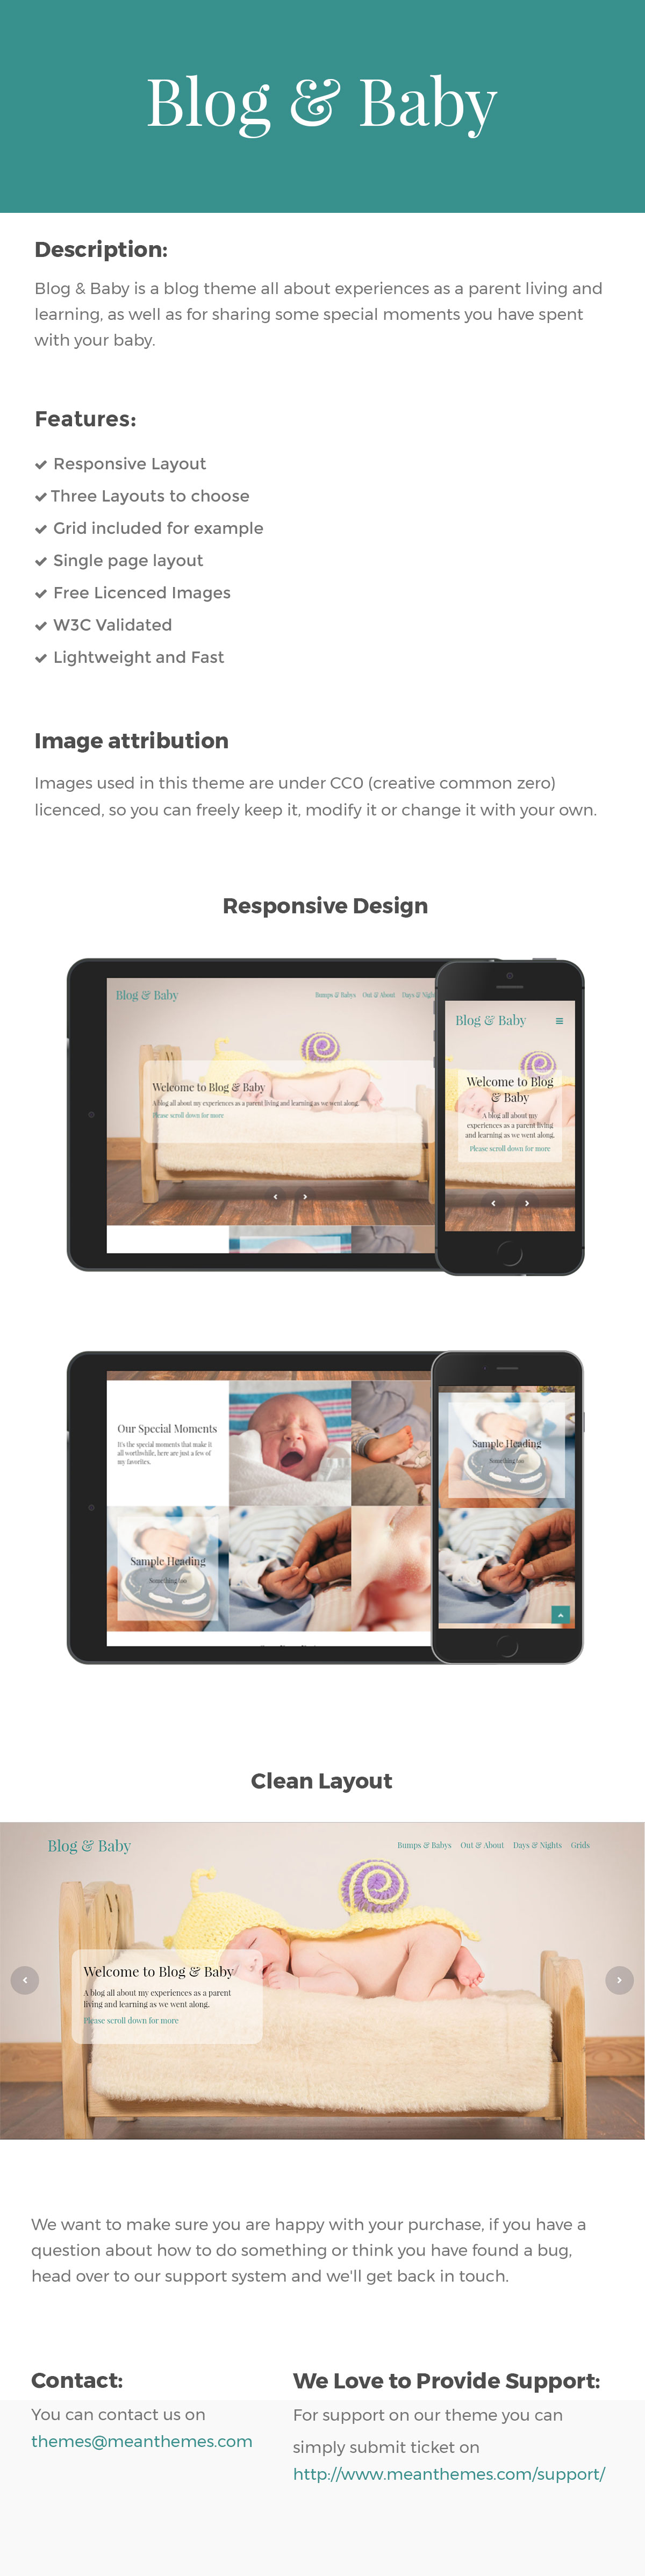 Blog & Baby - Responsive HTML Template For Baby Blogs - 1